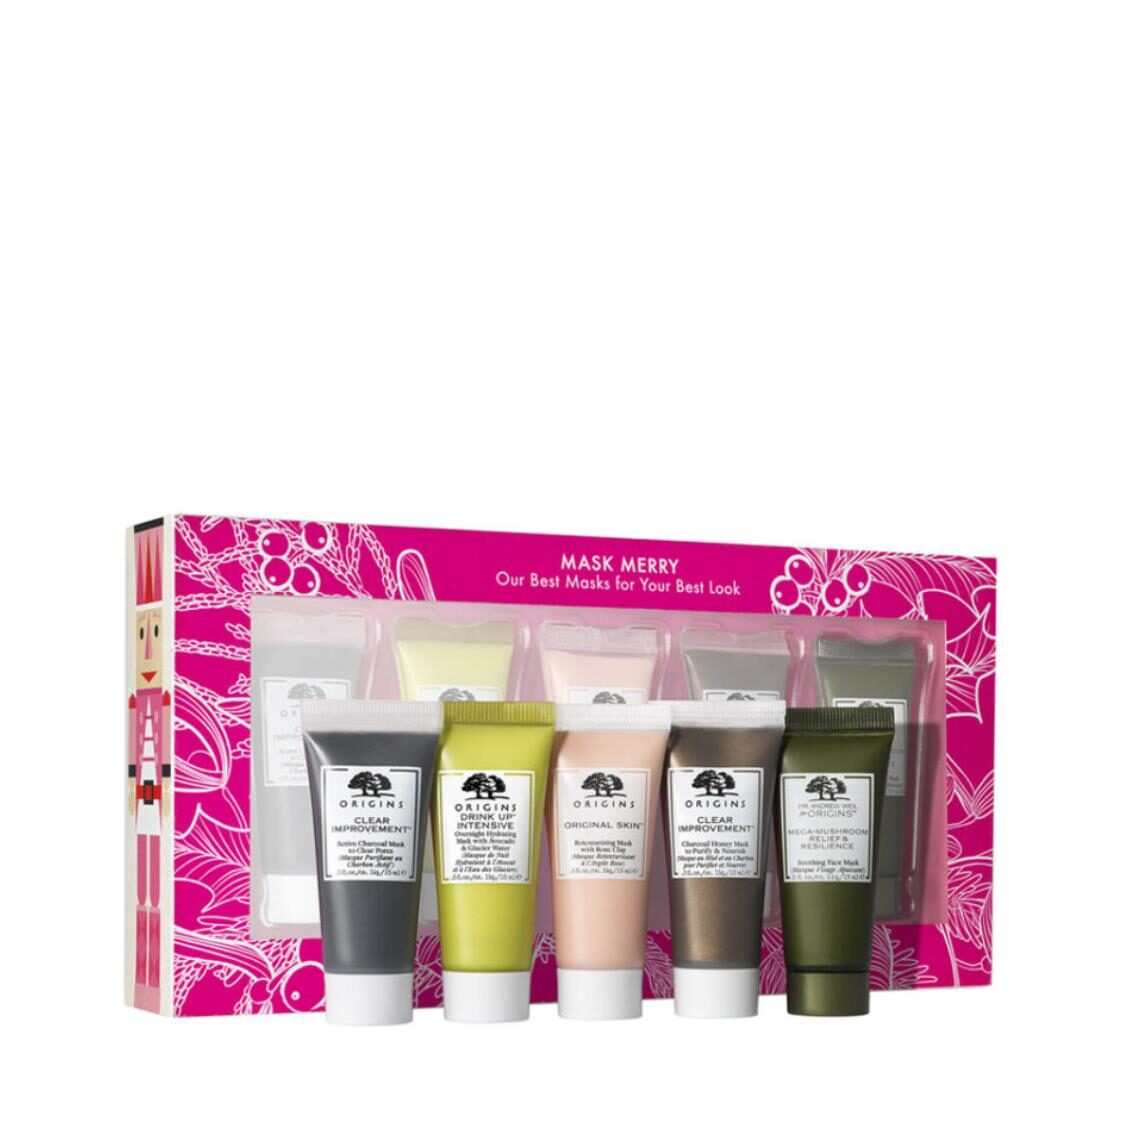 Origins Mask Merry Gift Set